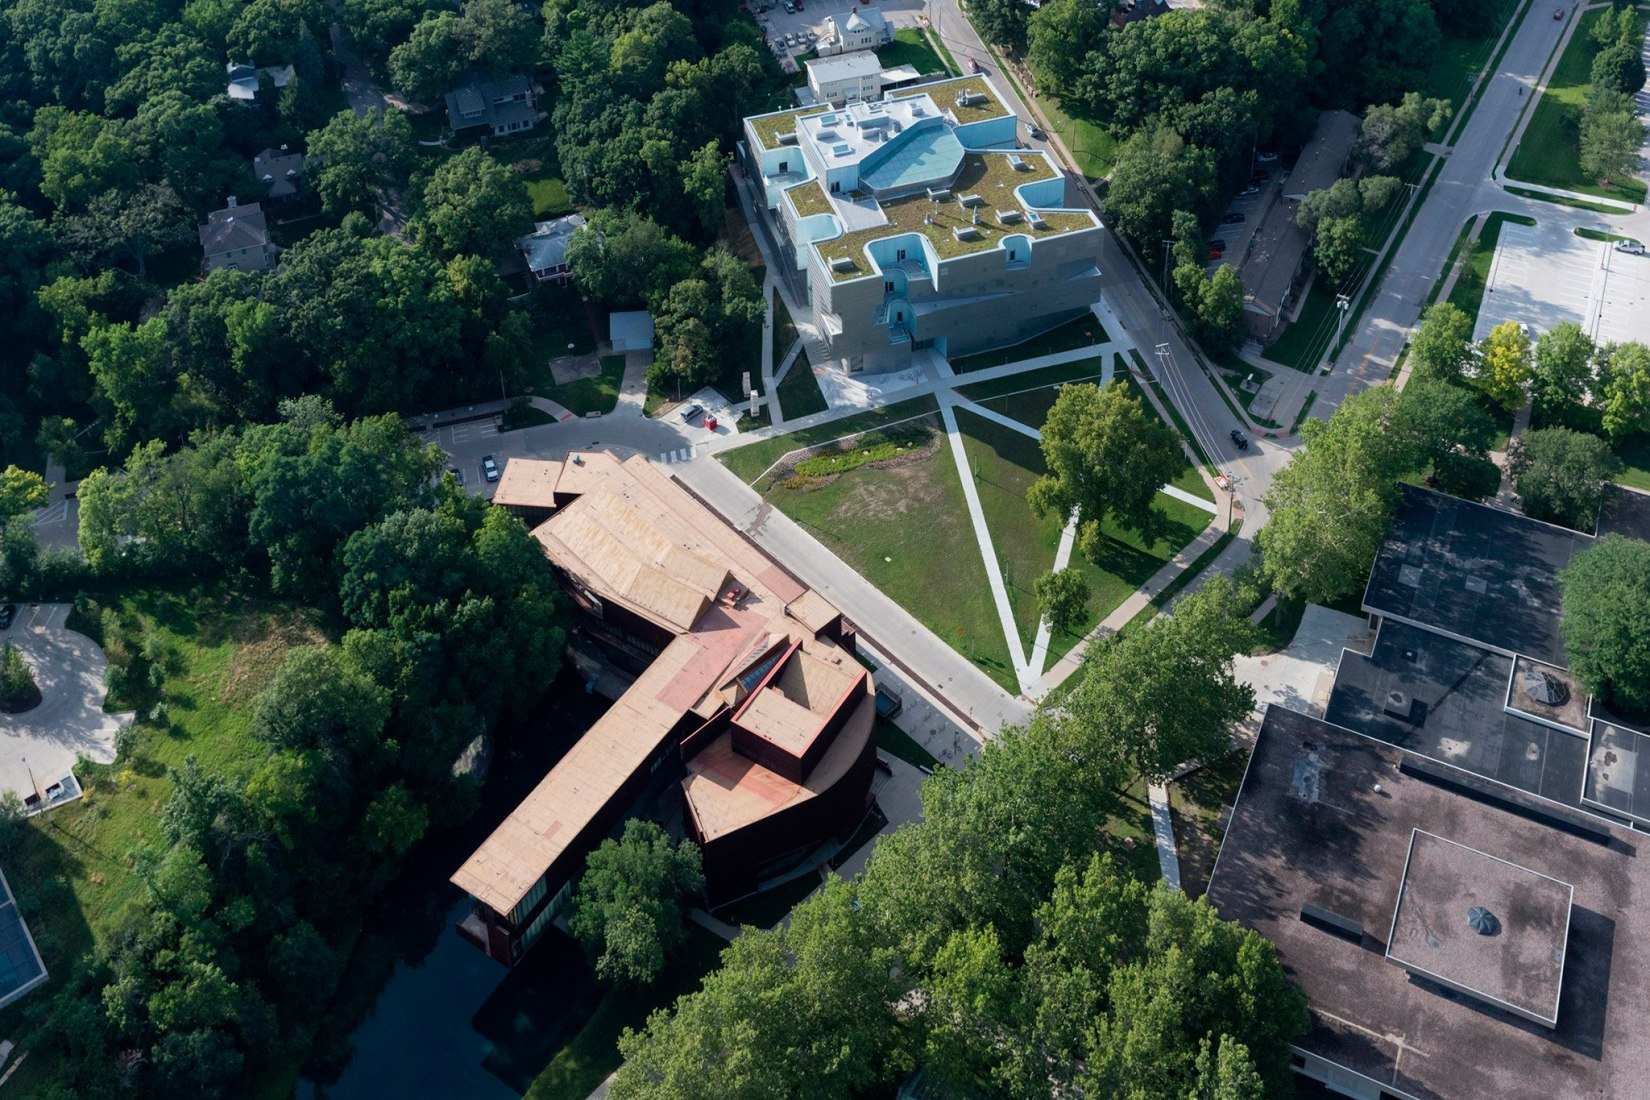 Overview. Visual Arts Building by Steven Holl. Photograph © Iwan Baan